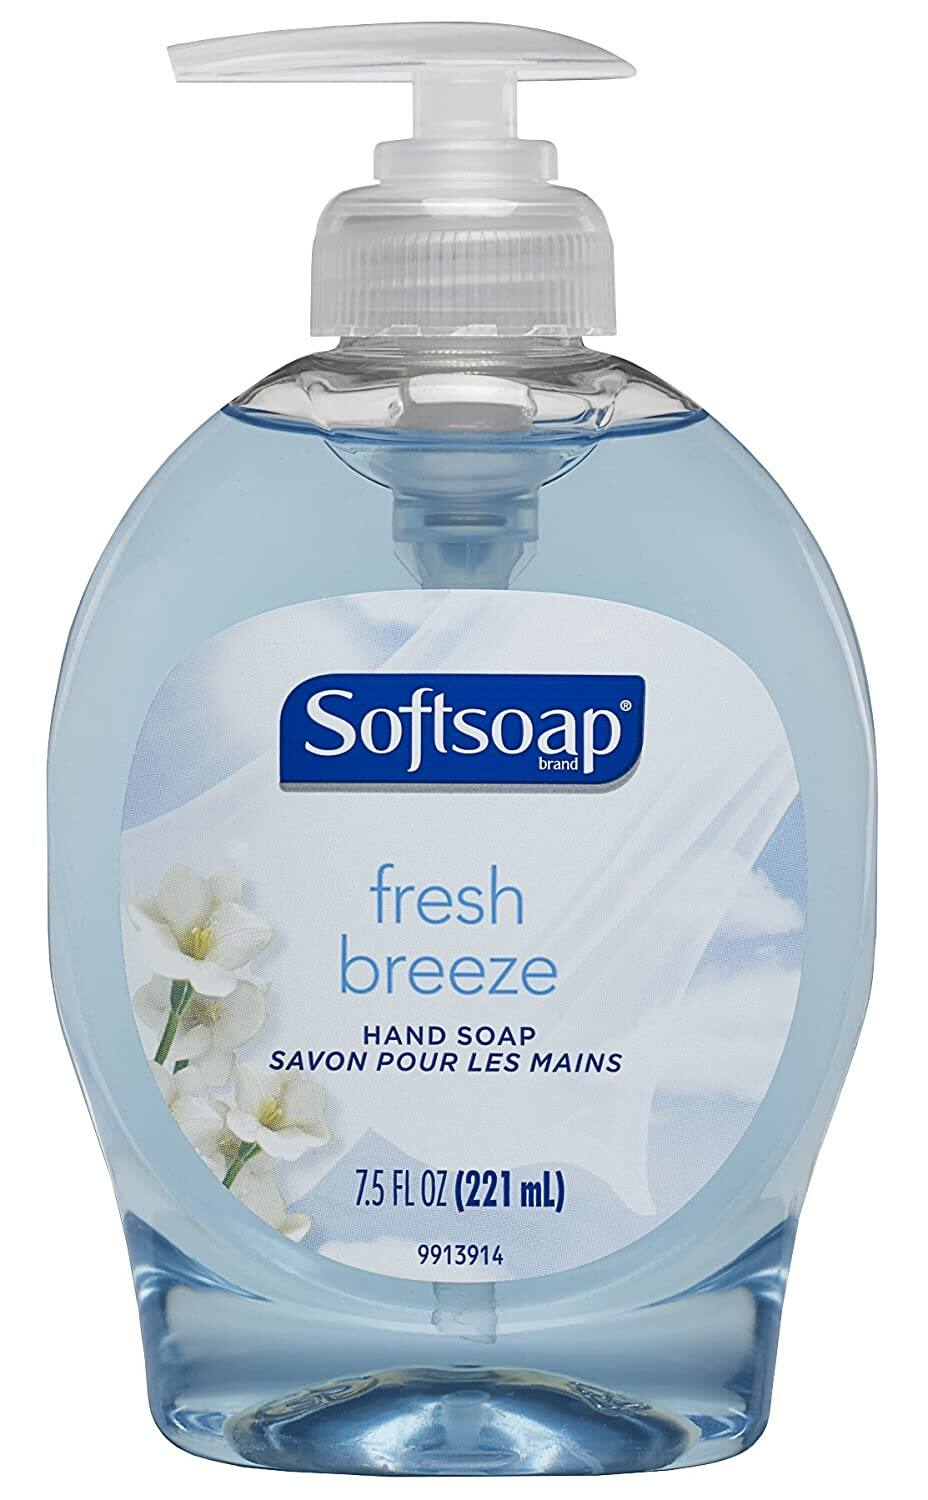 Softsoap Liquid Hand Soap, (Fresh Breeze or Milk & Honey) - 7.5 fluid ounce $0.88